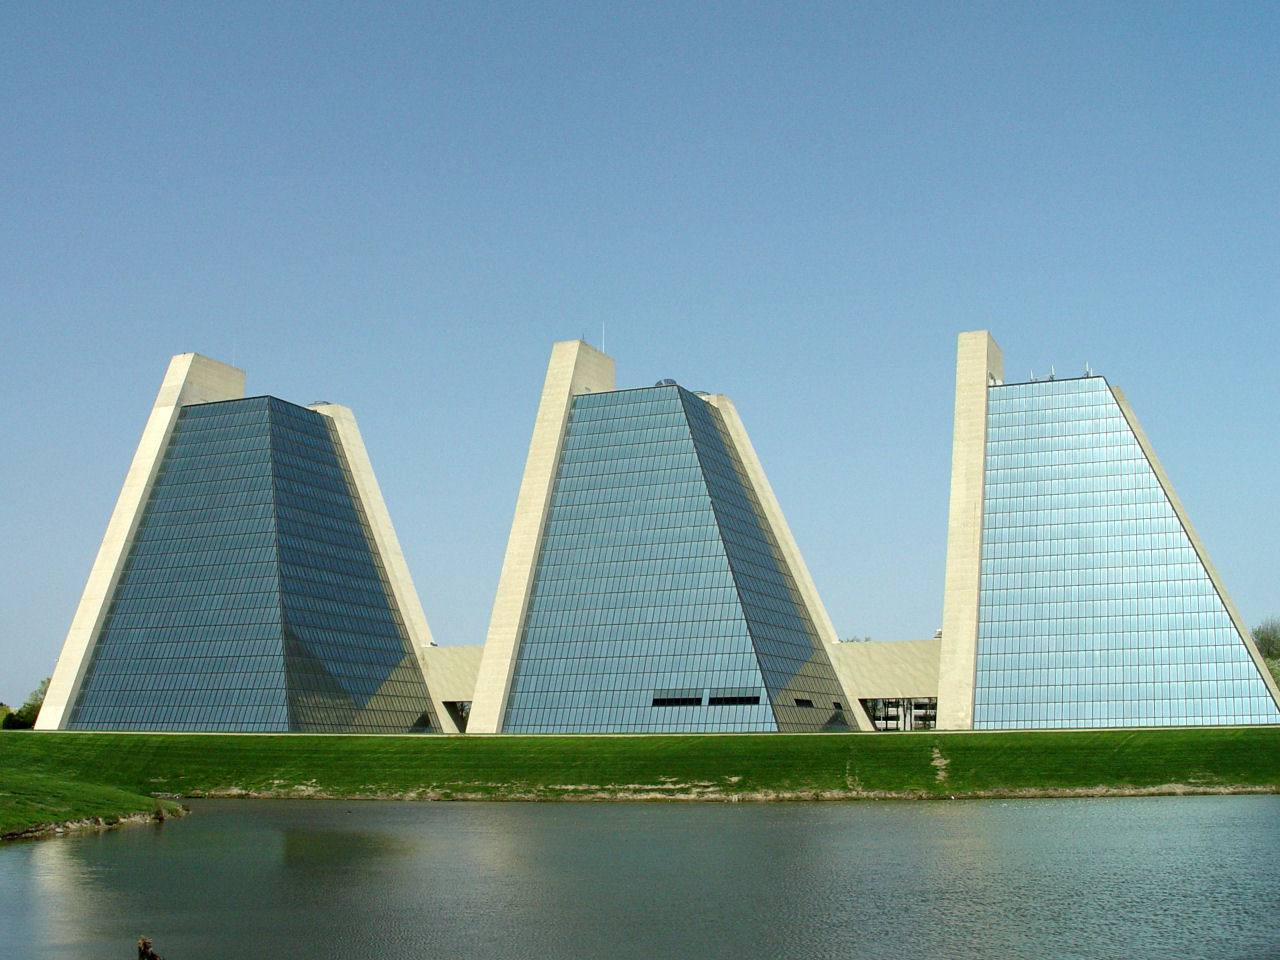 Three pyramid structures of glass, Kevin Roche-designed College Life Insurance Company